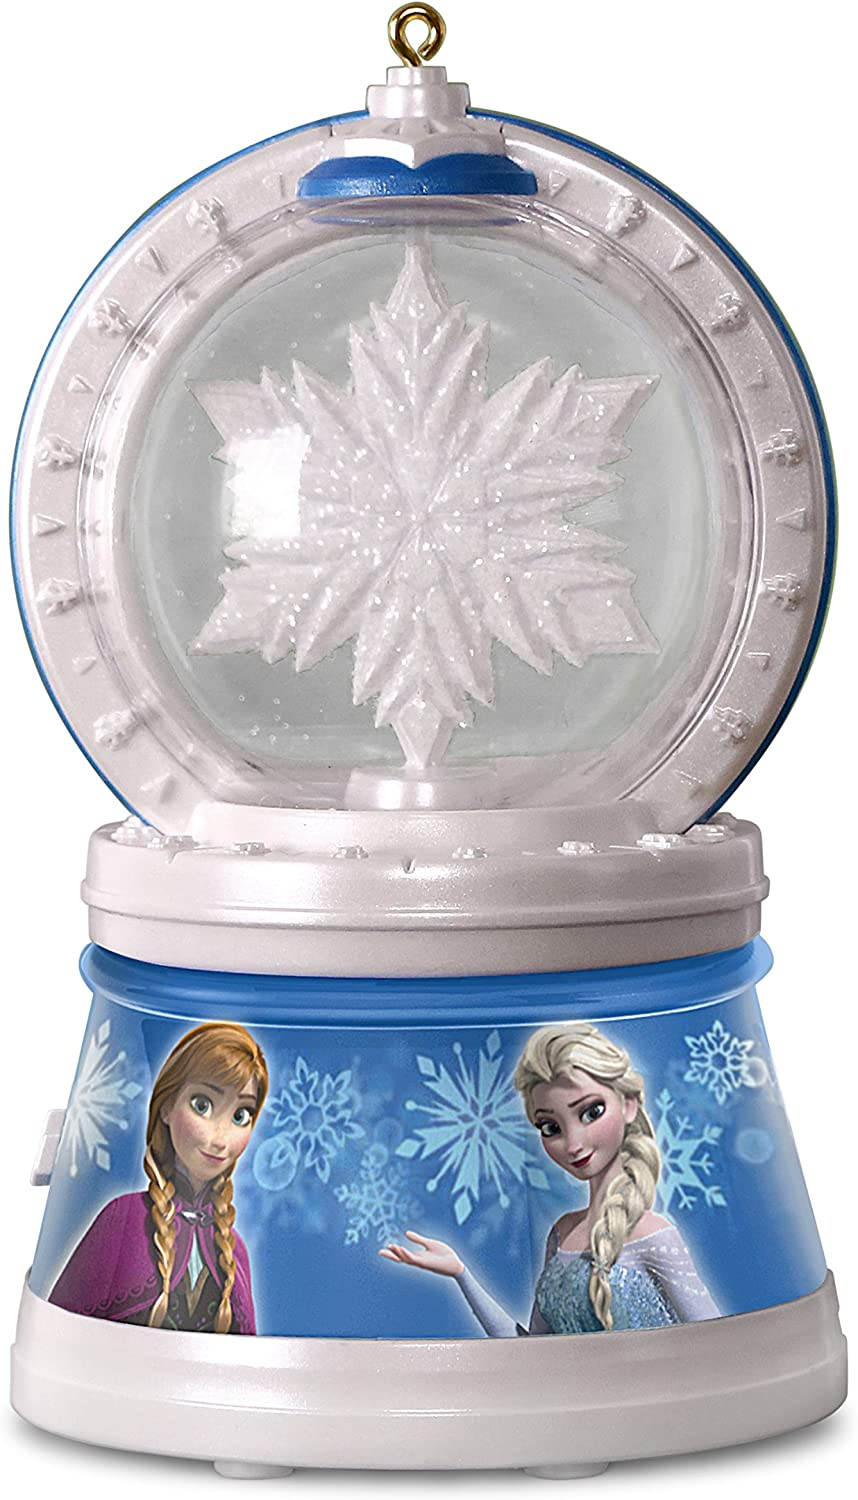 Hallmark Keepsake 2017 Disney Frozen Elsa's Magic Snowflake Christmas Ornament With Light and Music